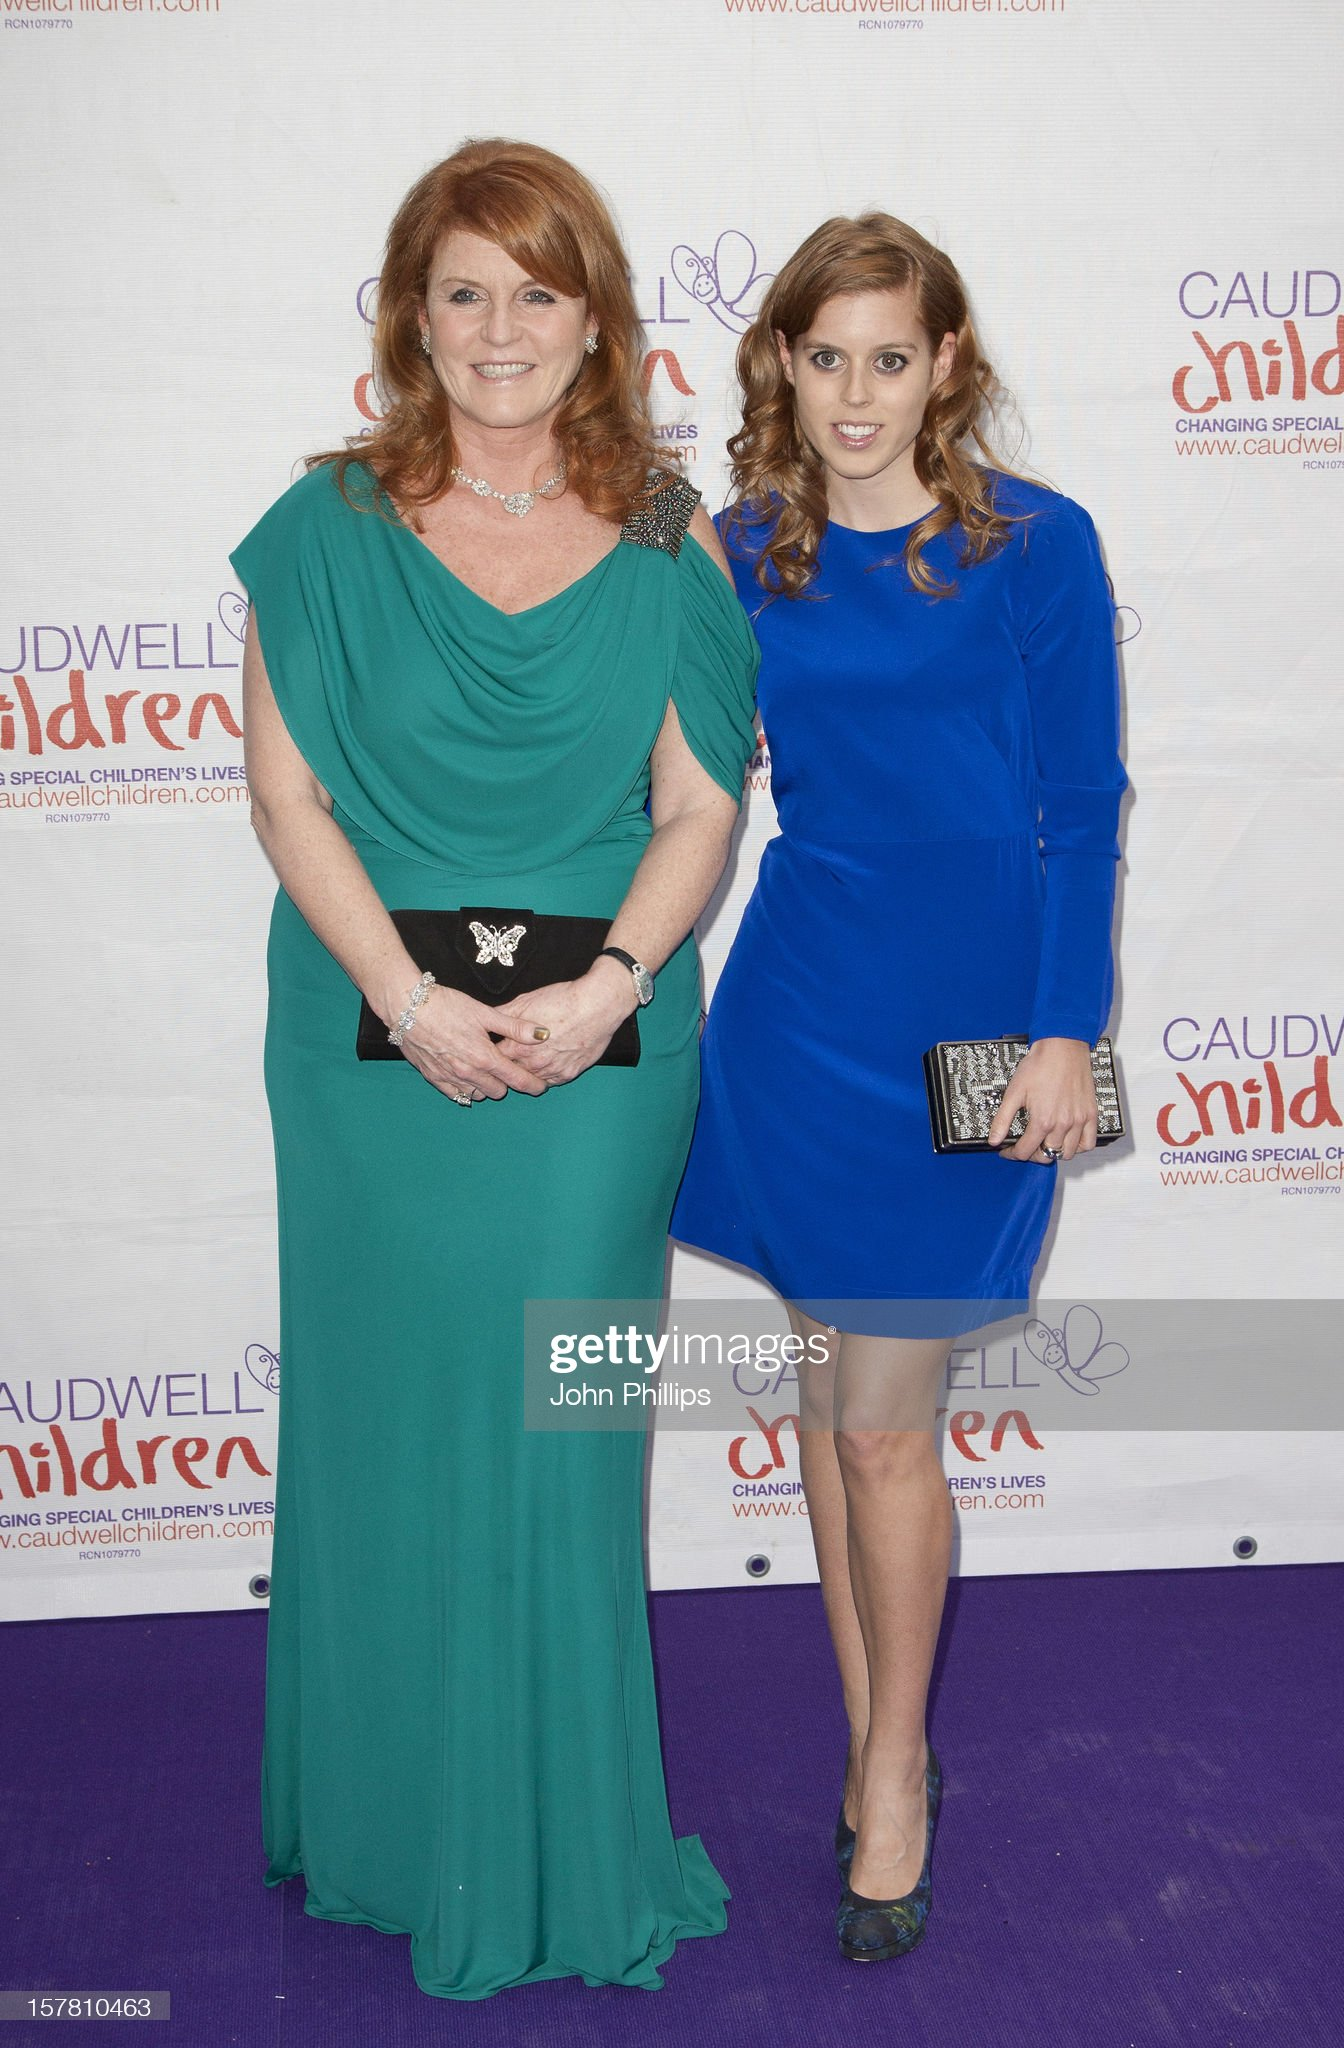 The Caudwell Children Diamond Butterfly Ball - London : News Photo